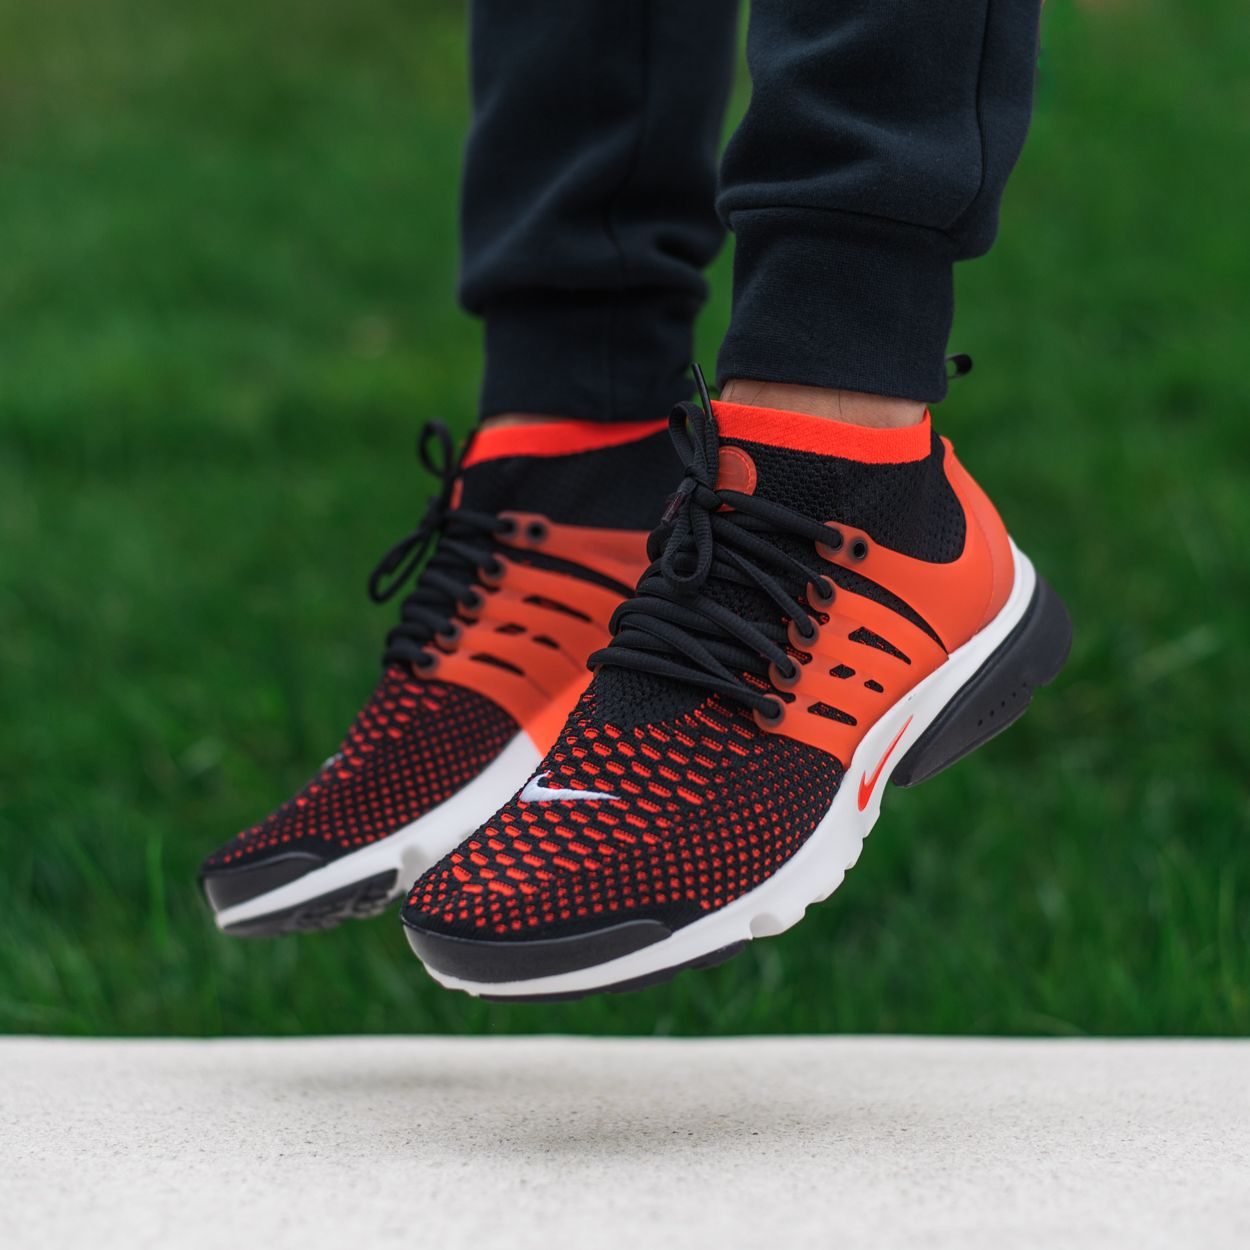 Here's How The Nike Air Presto Ultra Flyknit In Black/Bright Crimson Looks  Like On-Feet • KicksOnFire.com